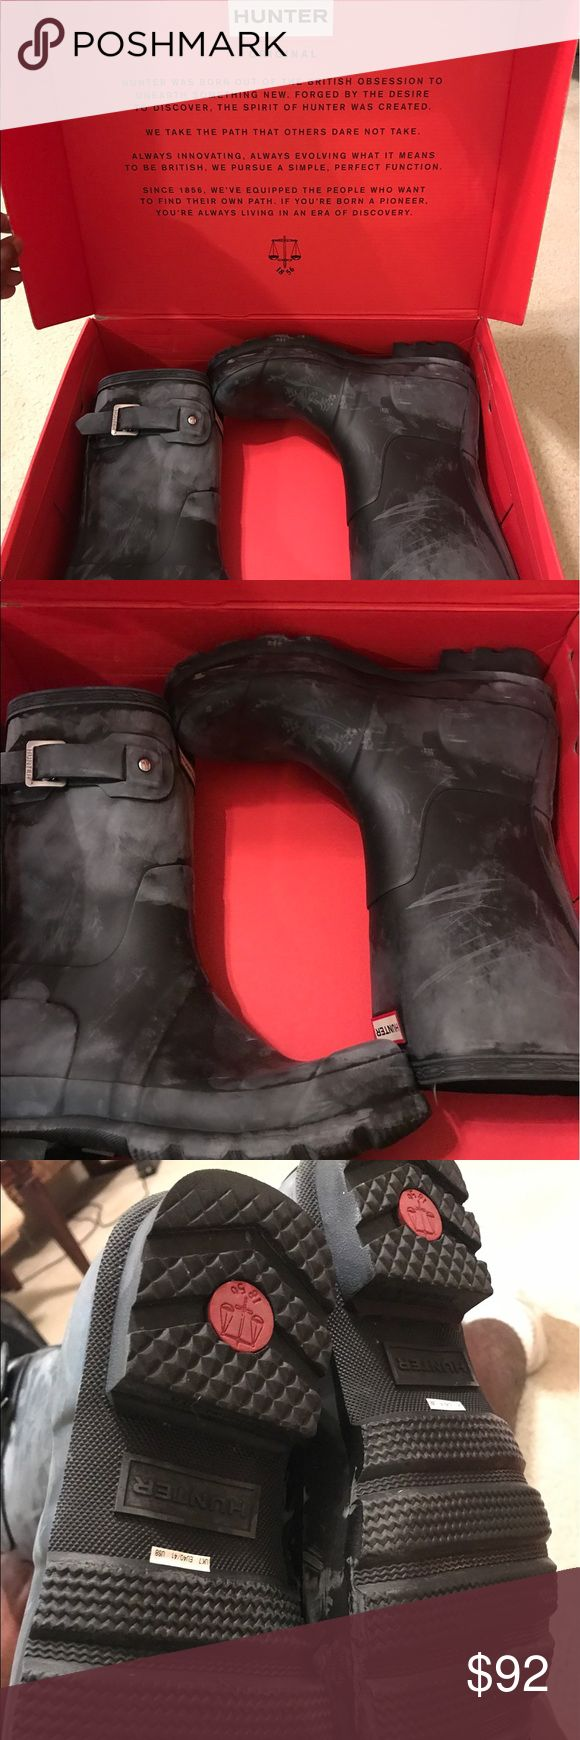 Hunter Short Rain Boots Wore these maybe 5 times (if that) got for my birthday and didn't like them like I thought I would. Trying to sell. Serious offers. In good condition they have white marks on them from the rain but can be easily cleaned with solution from hunter. Hunter Boots Shoes Rain & Snow Boots